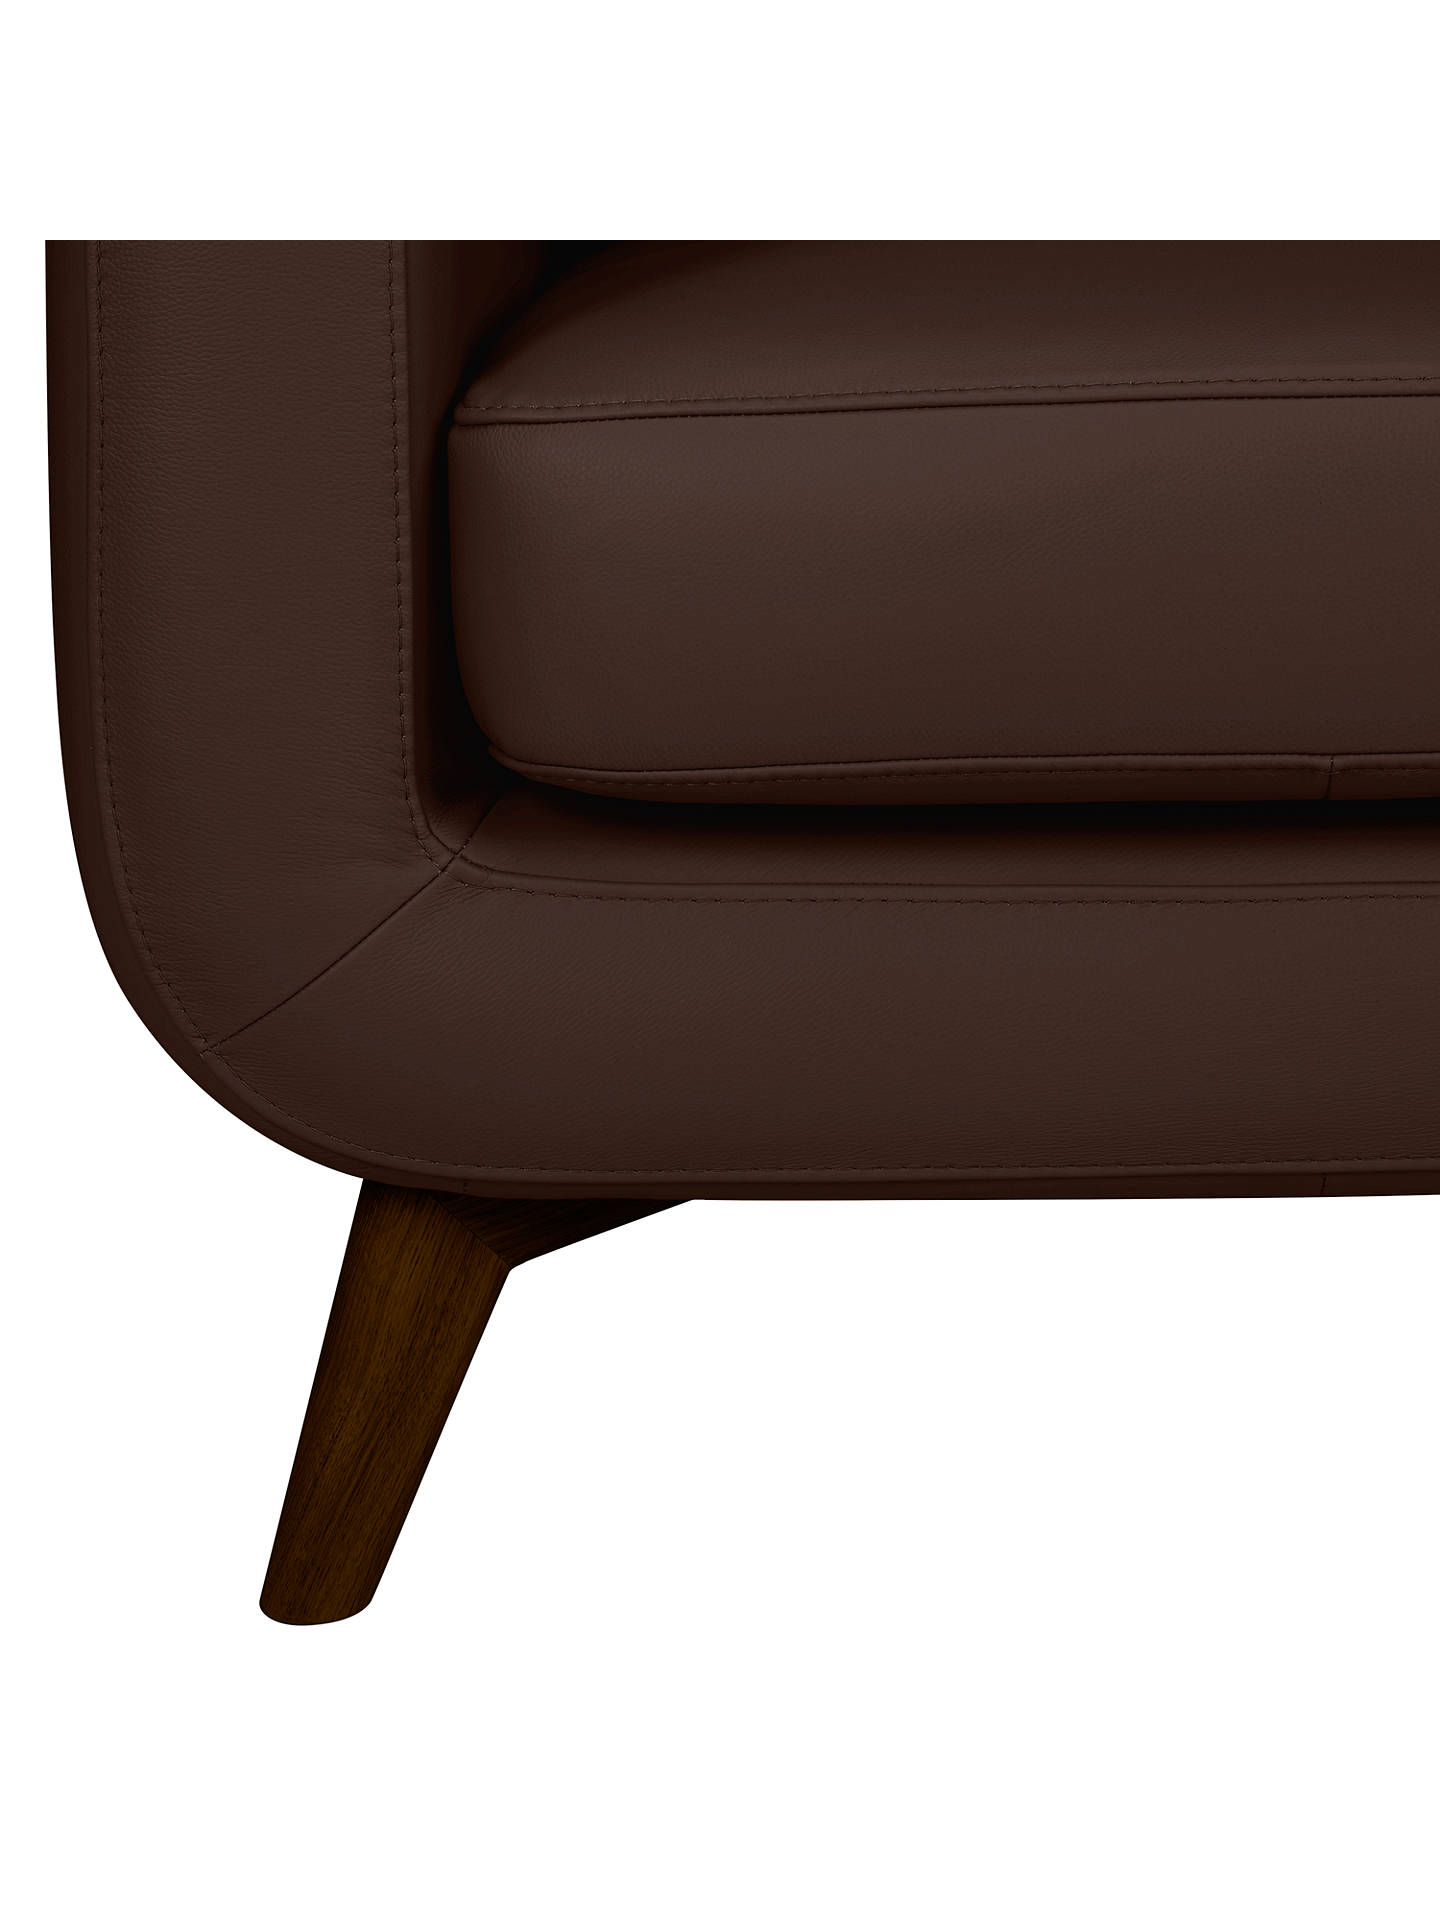 Buy John Lewis & Partners Barbican Medium 2 Seater Leather Sofa, Dark Leg, Nature Brown Online at johnlewis.com